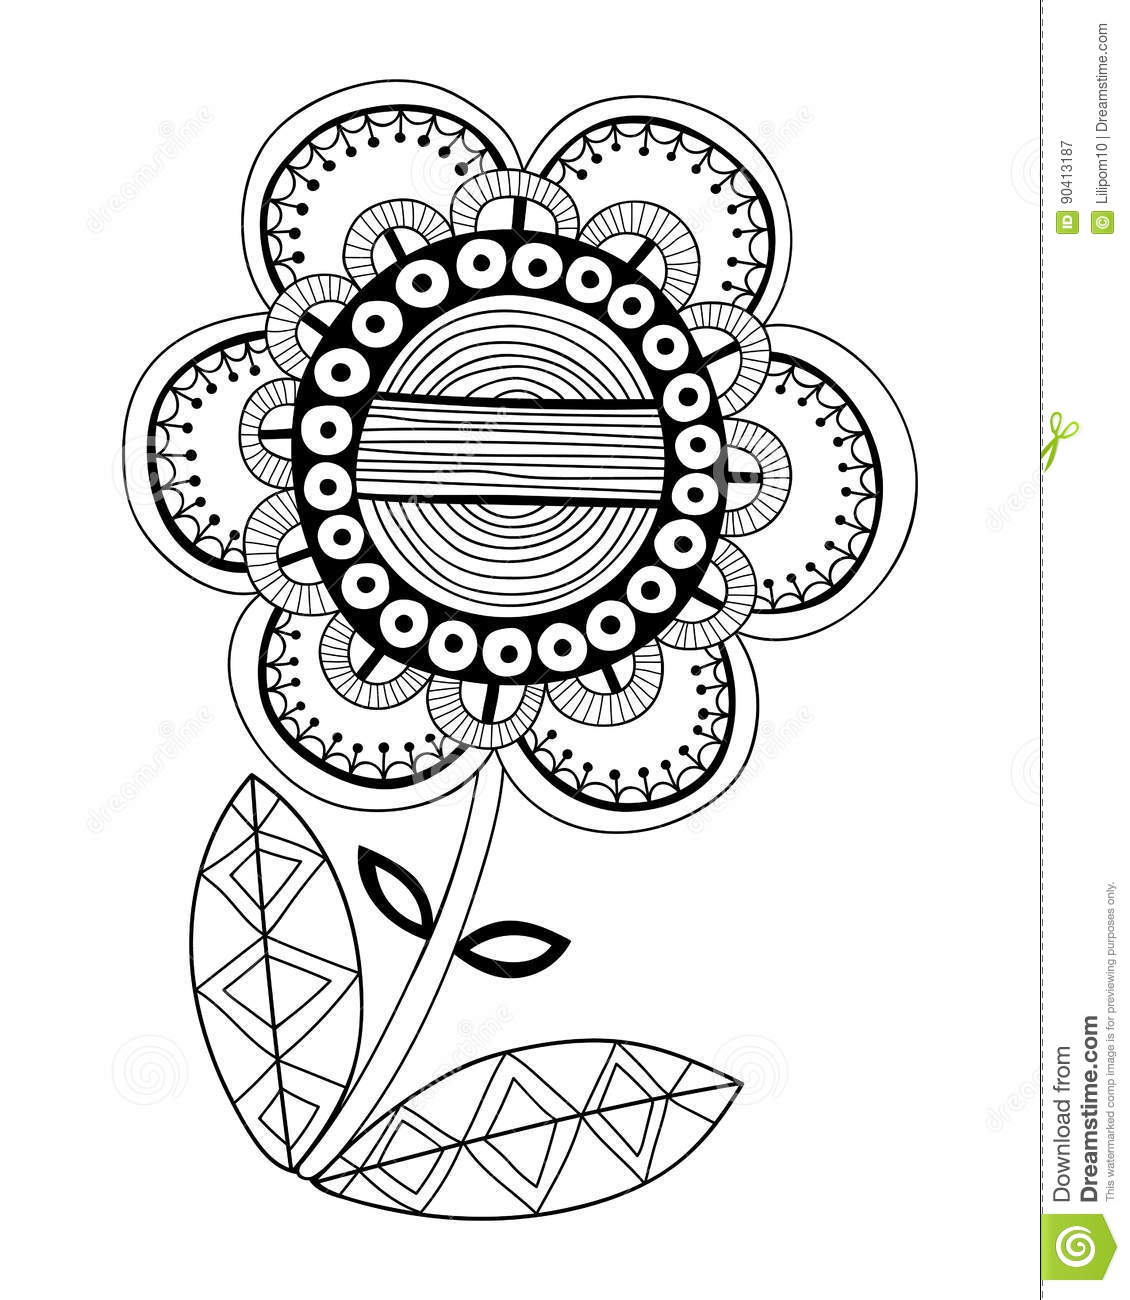 Black And White Illustration Of A Fancy Decorative Flower For Coloring Book Pages Stock Vector Illustration Of Cute Flora 90413187